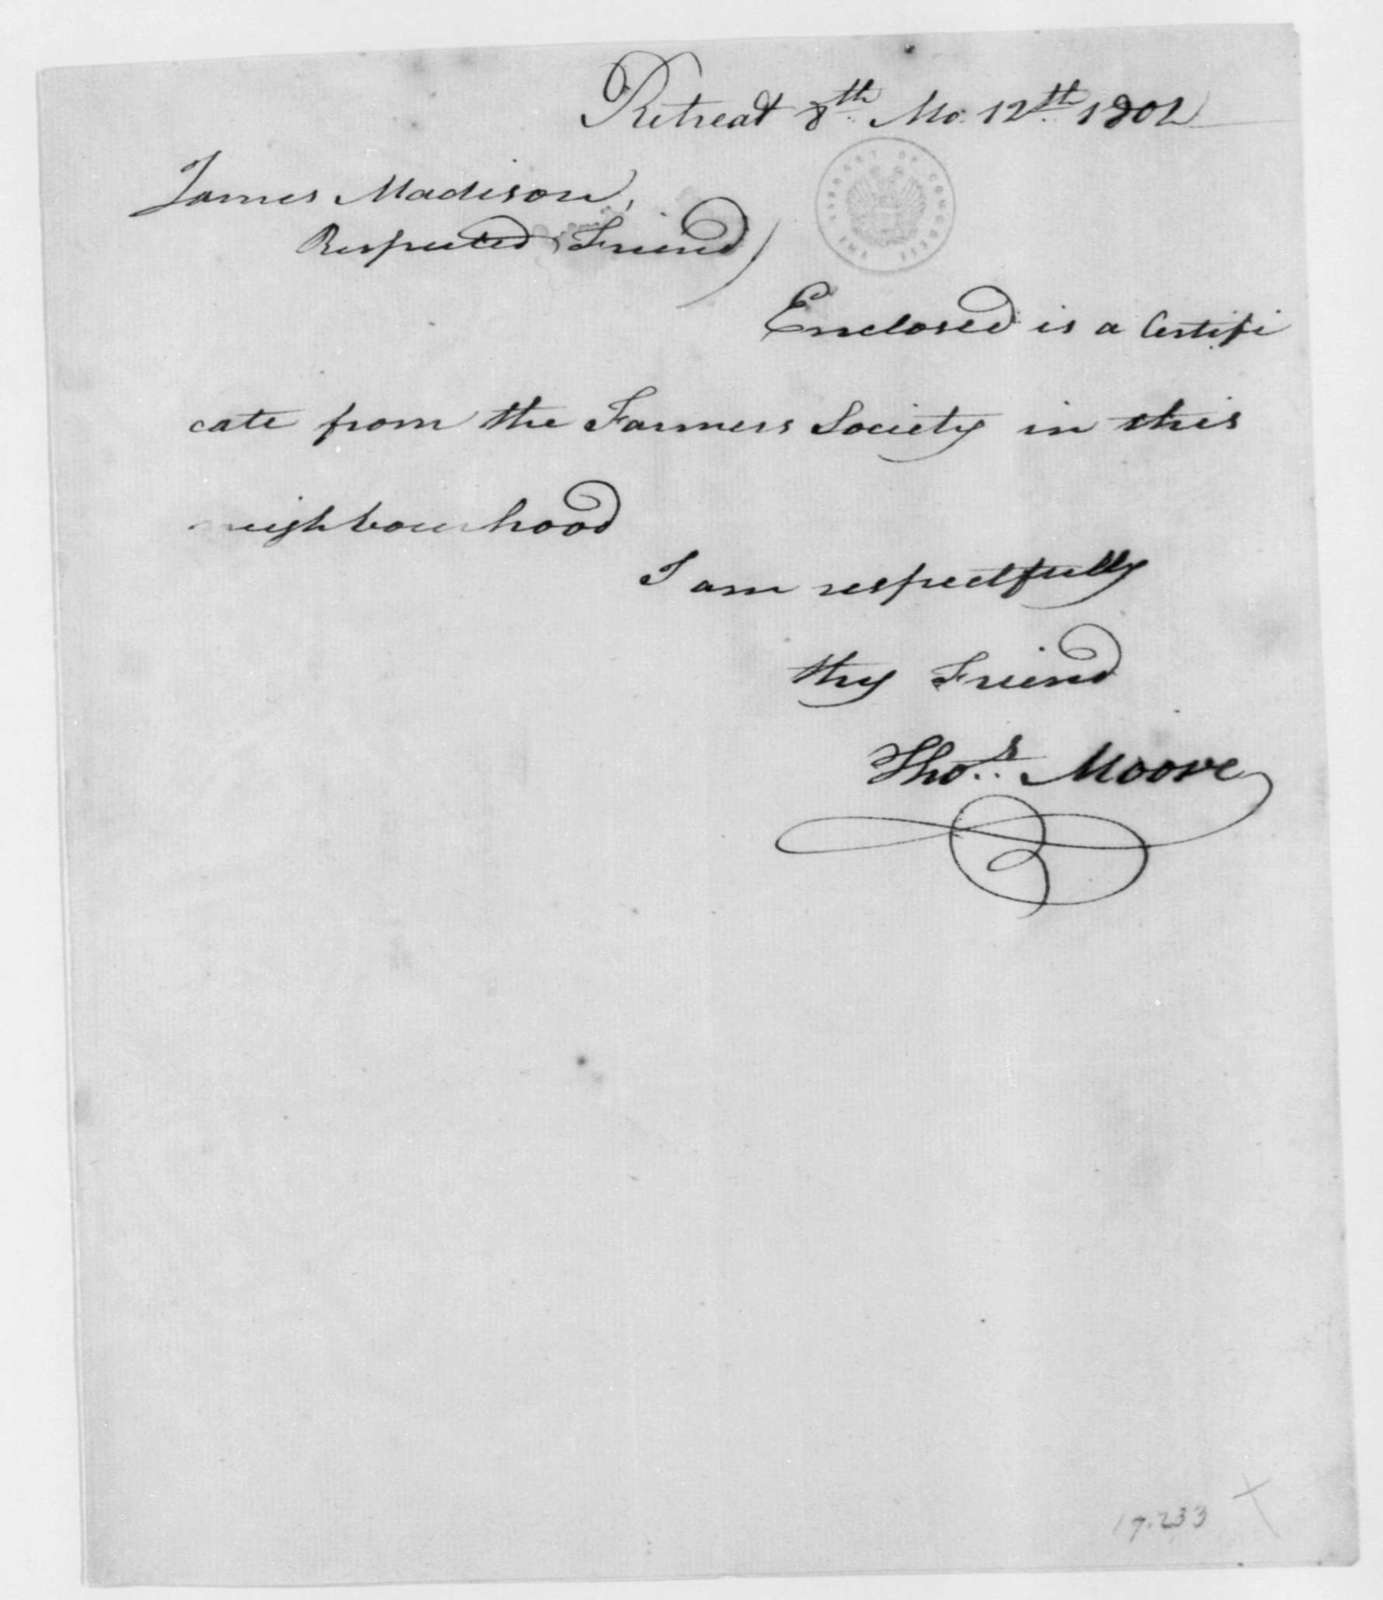 Thomas Moore to James Madison, August 12, 1802.